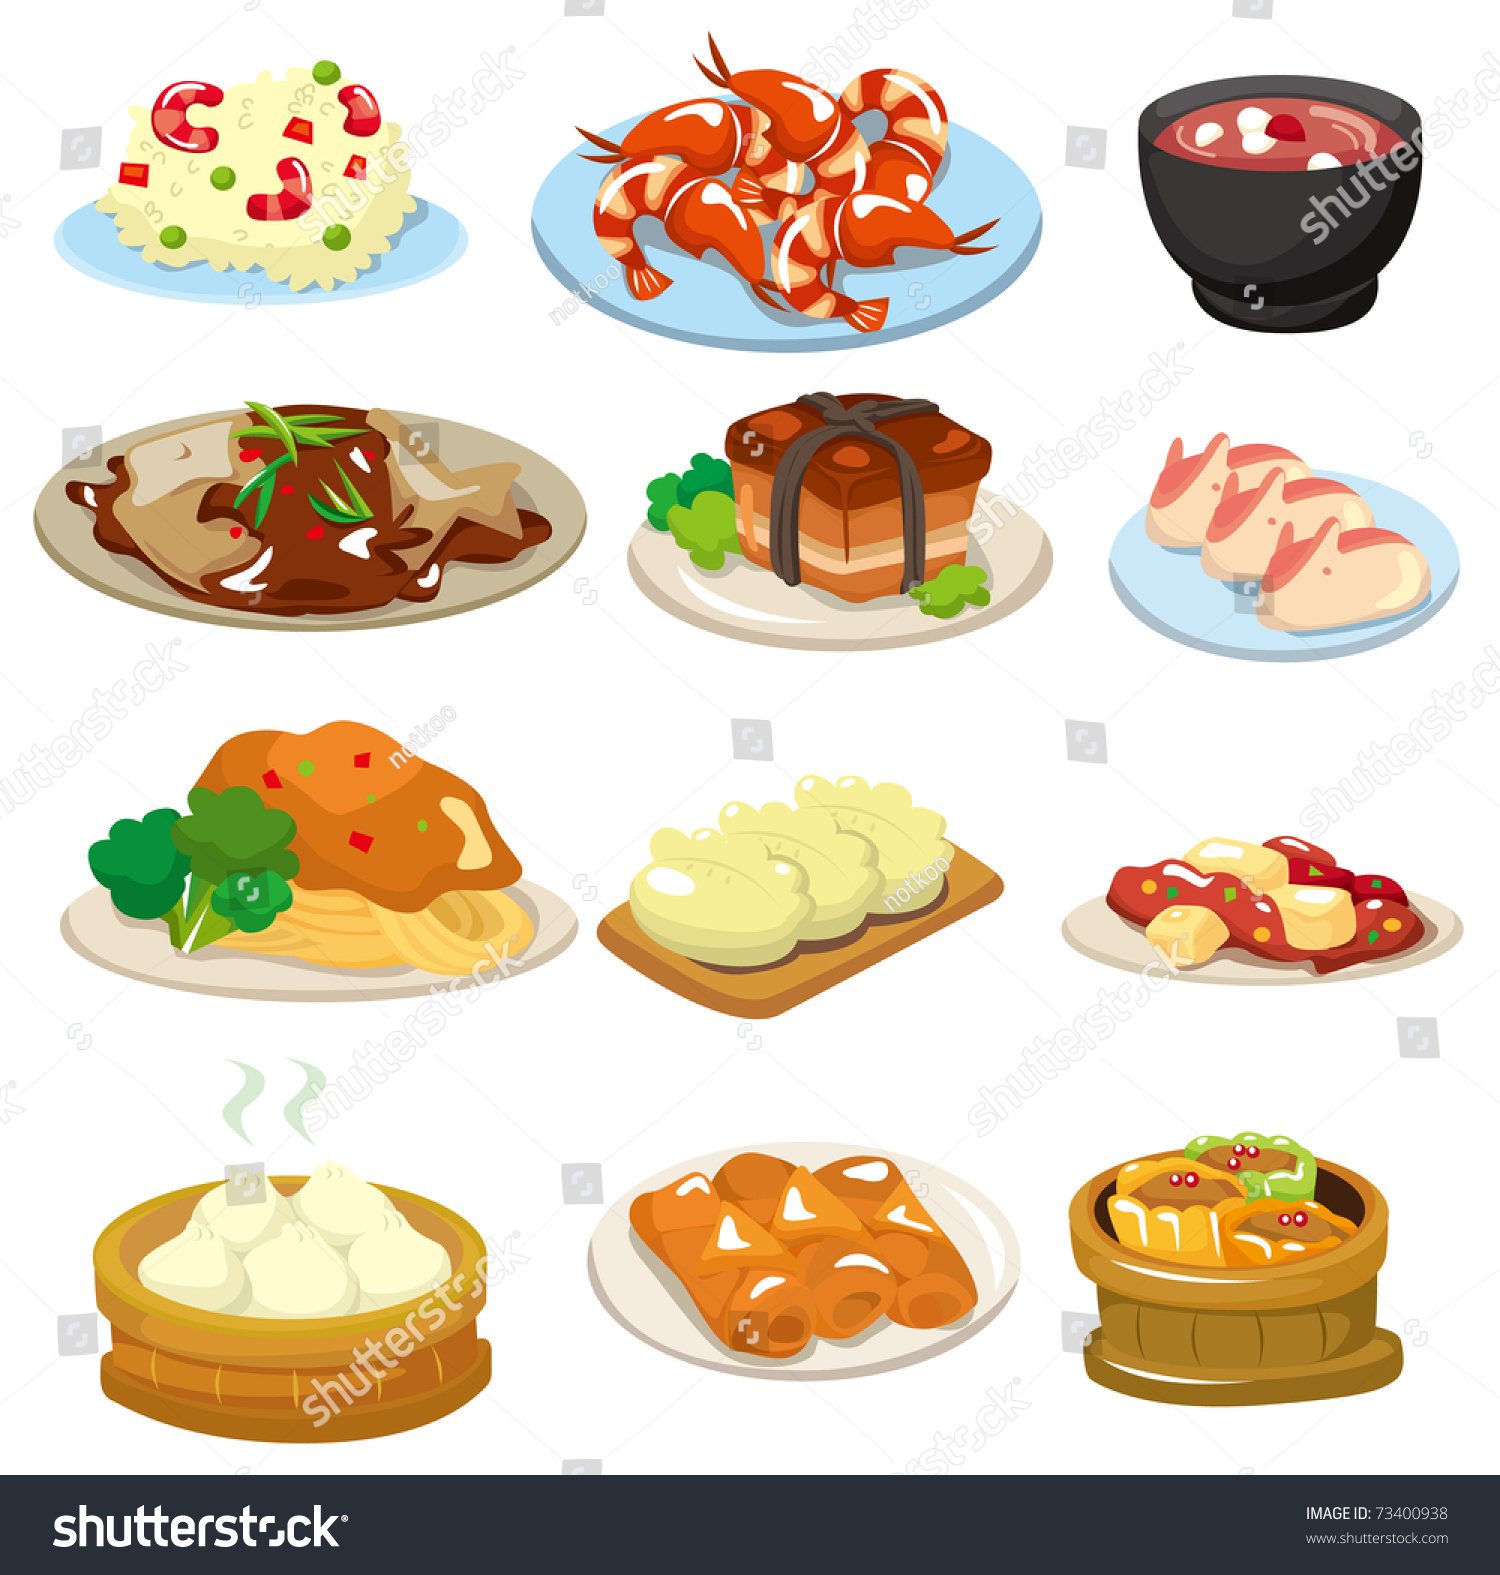 Cartoon Chinese Food Icon Stock Vector 73400938 - Shutterstock